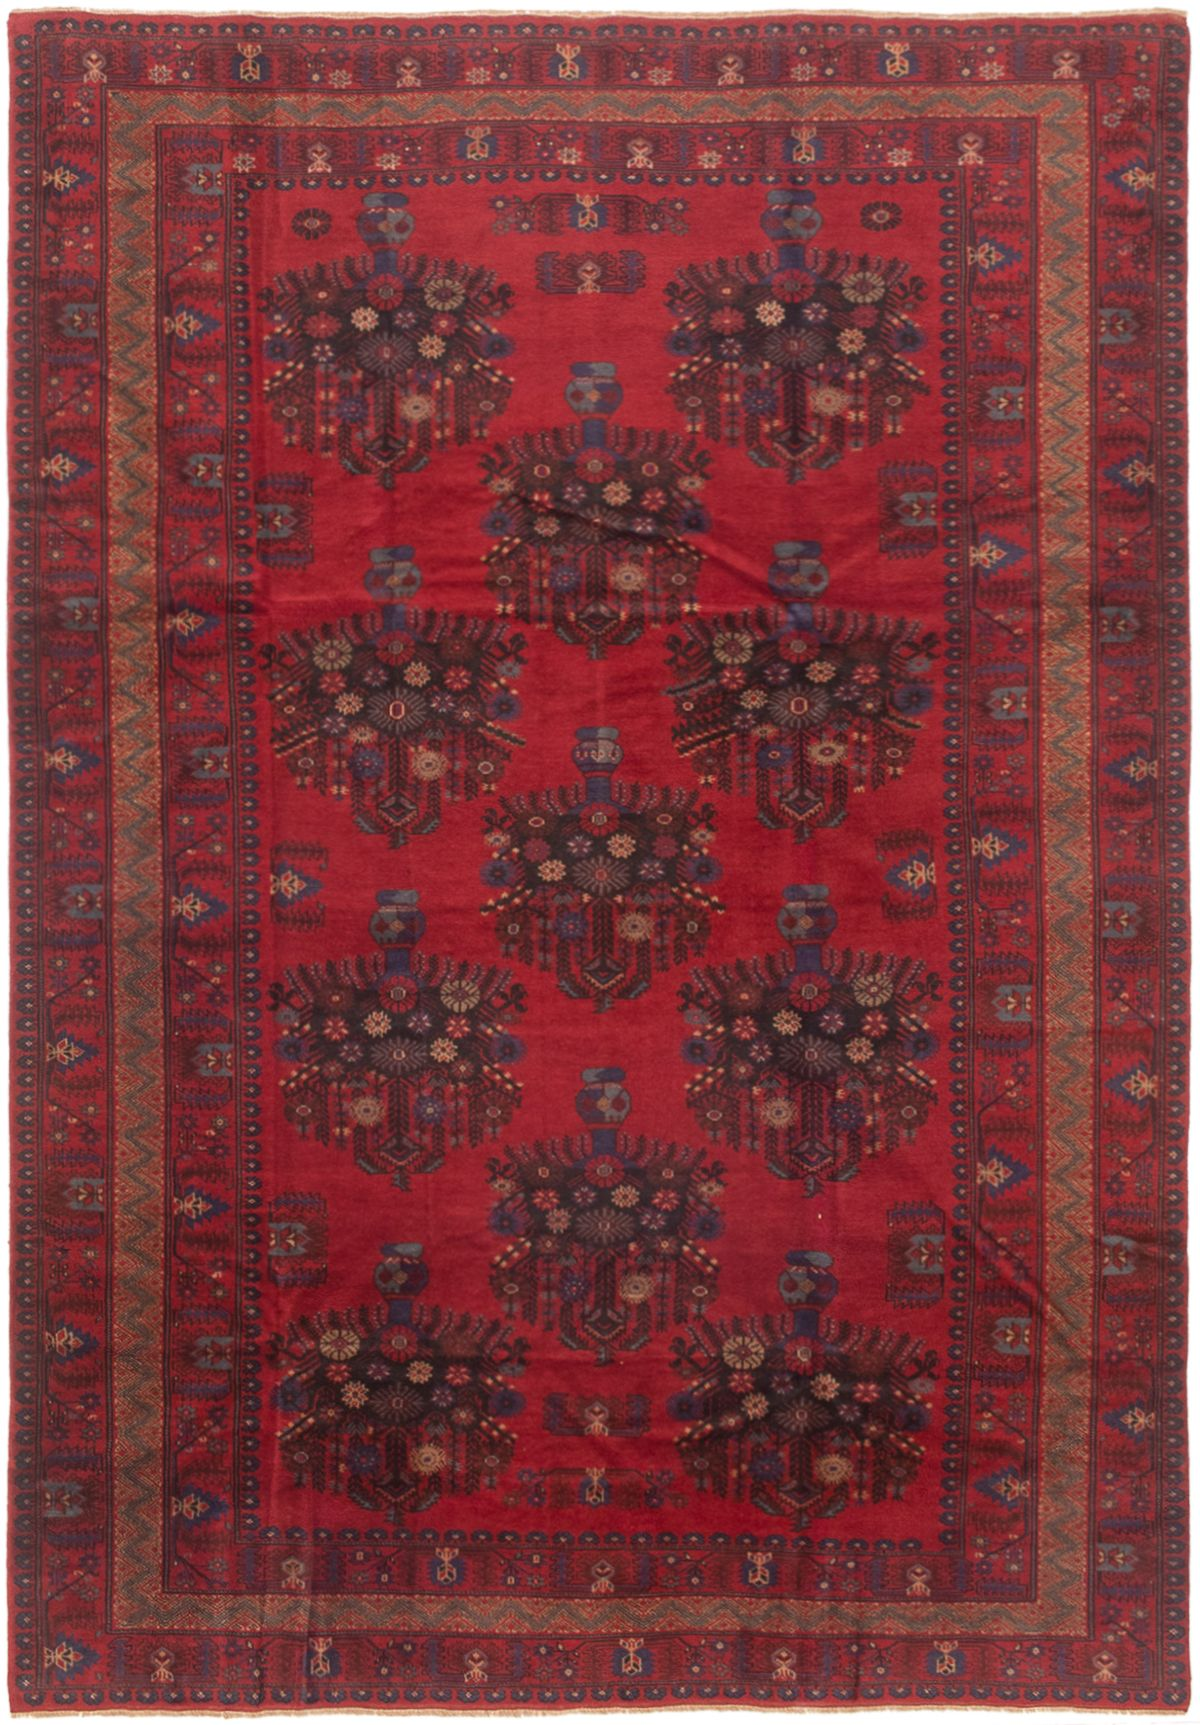 "Hand-knotted Finest Rizbaft Red Wool Rug 6'7"" x 9'7"" Size: 6'7"" x 9'7"""